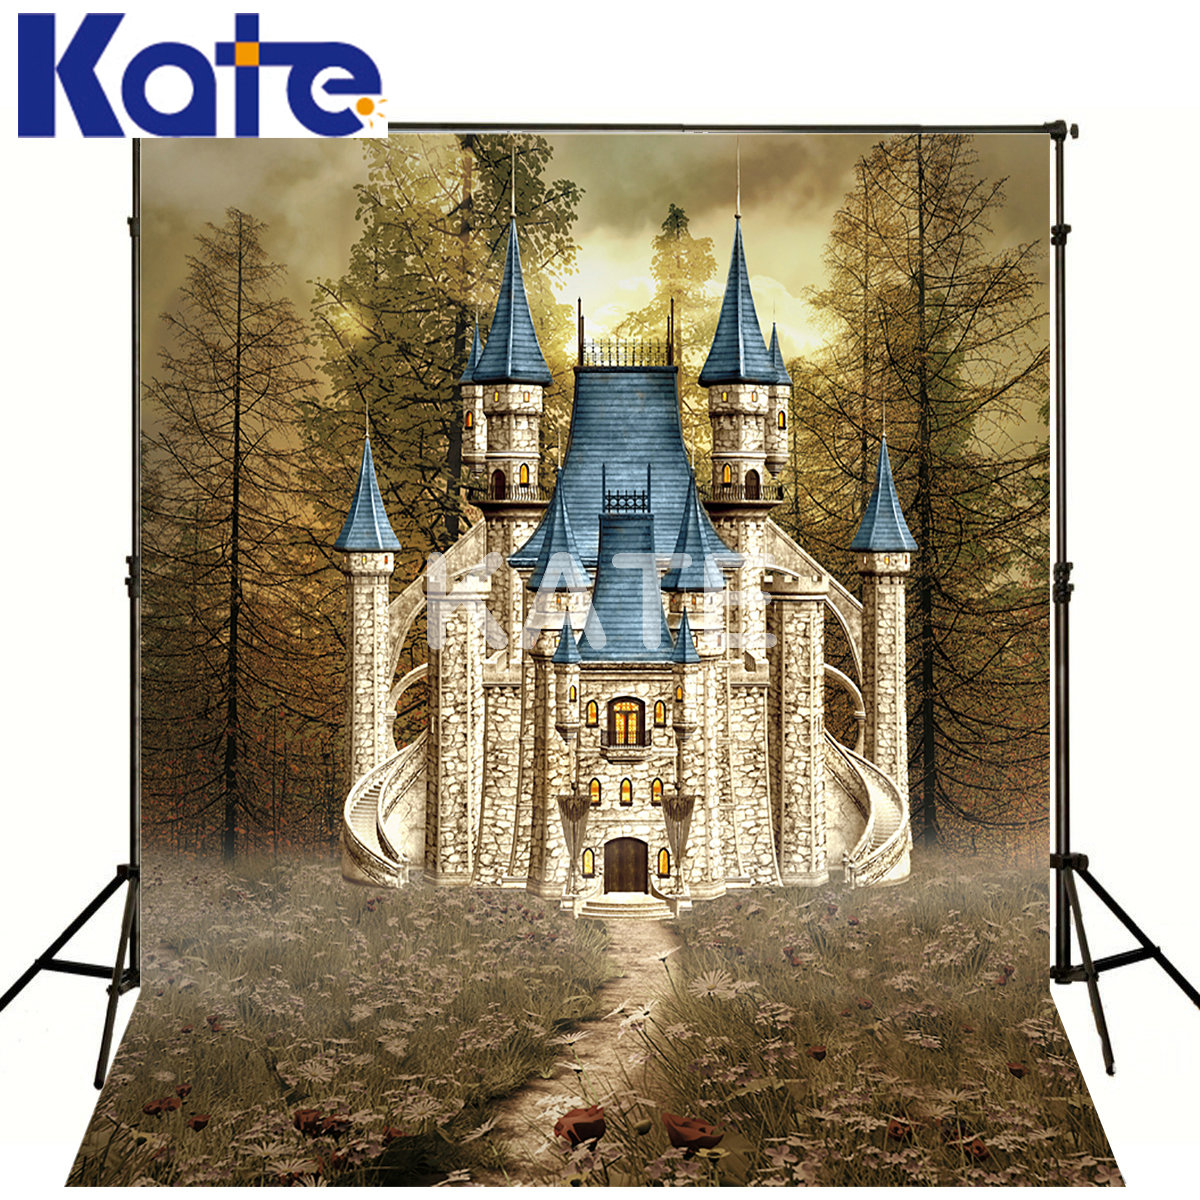 Thick Cloth Backdrops For Photography Wild Cartoon Castle Kate Background Backdrop Fabric Backgrounds kate 300x600cm photography background castle photography baby backdrops castle creek cartoon background newborn photograph